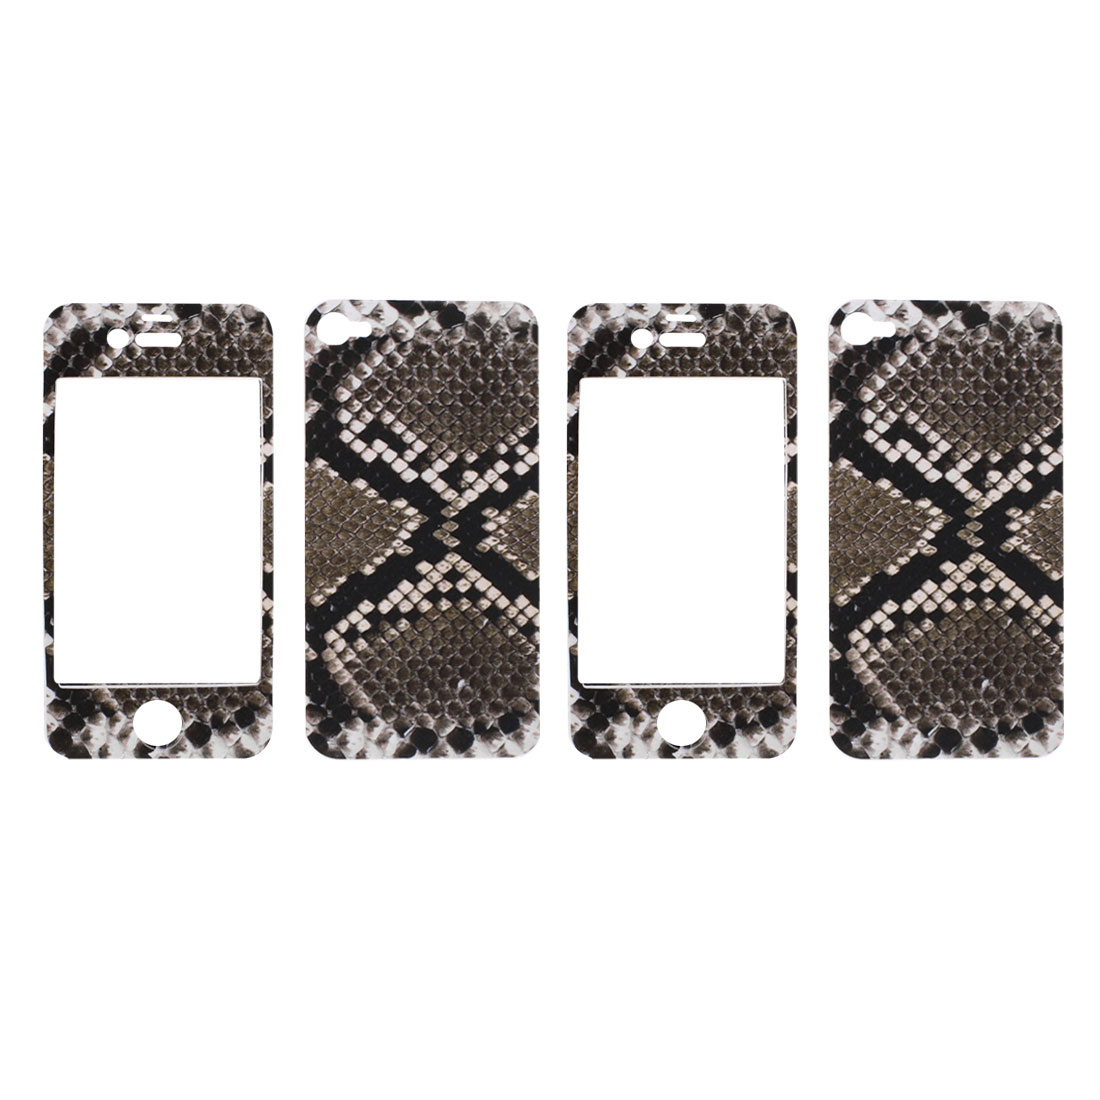 Snake Pattern Gray Black Vinyl Front Back Decal Sticker 2 Pcs for iPhone 4 4G 4S 4GS